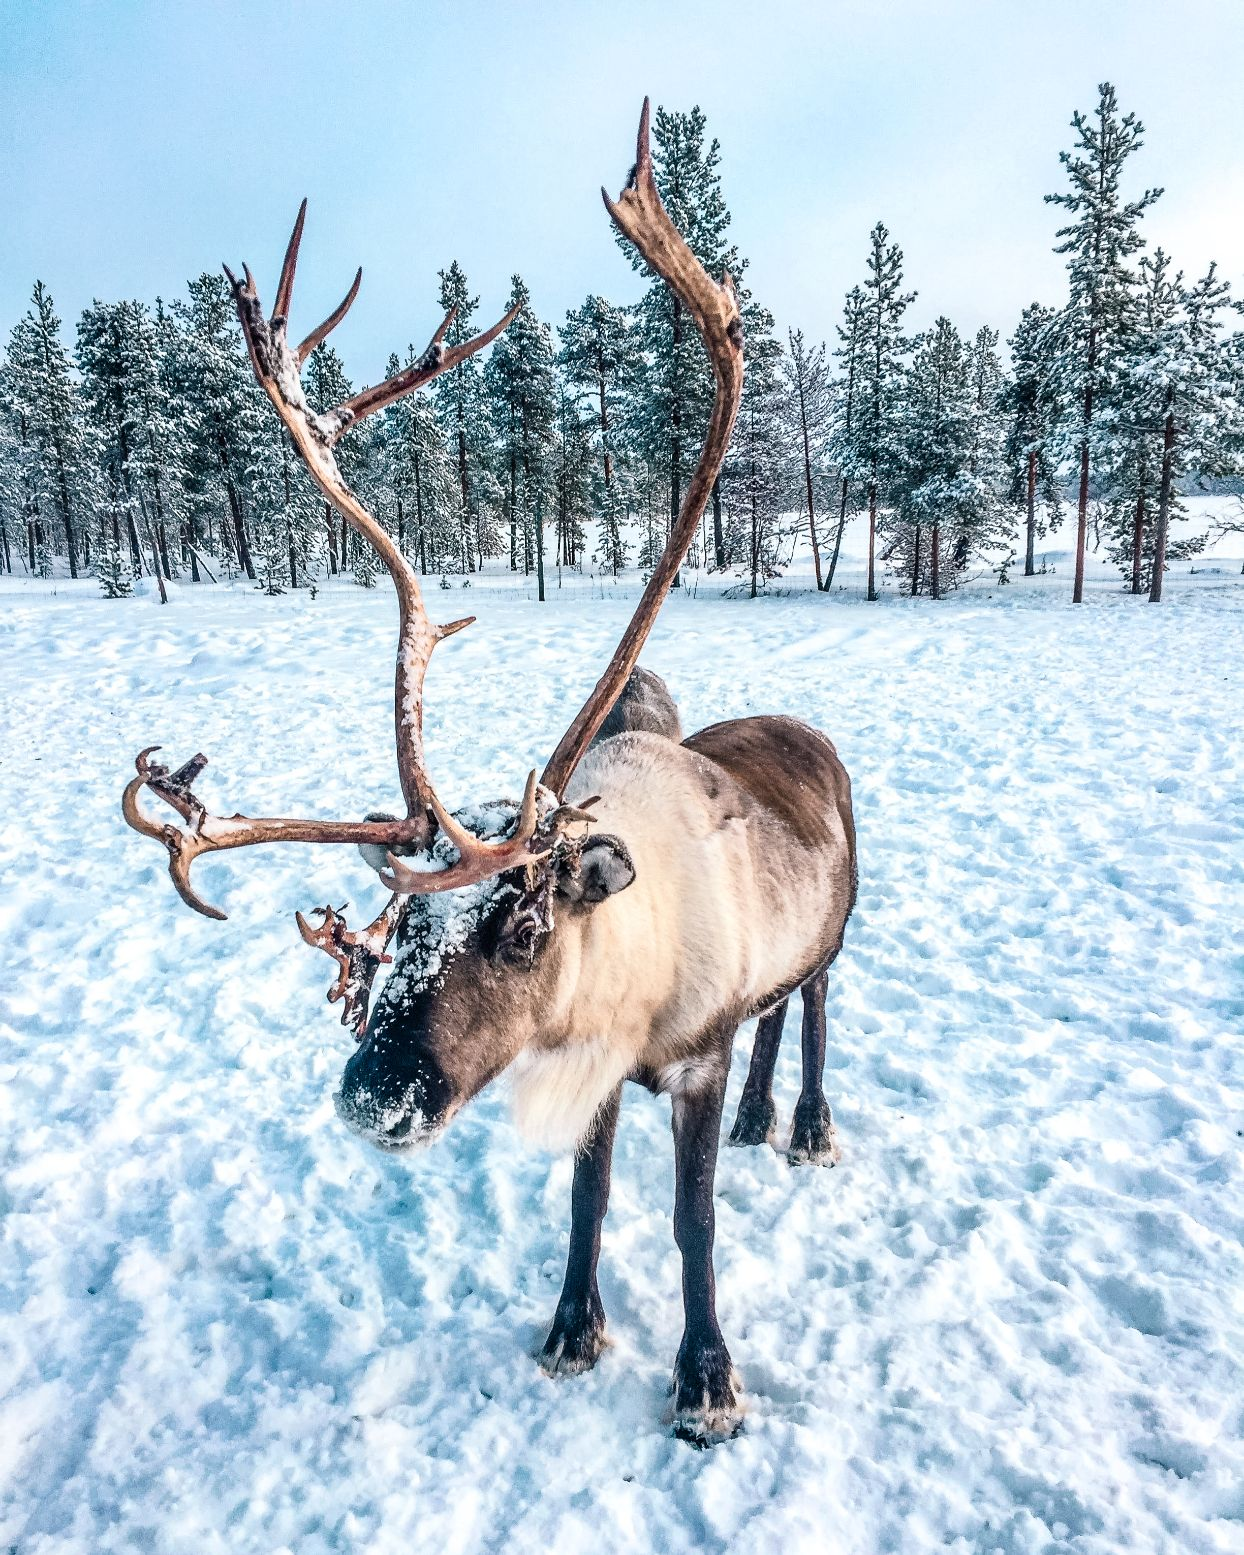 large reindeer with antlers standing in snow in Finnish Lapland